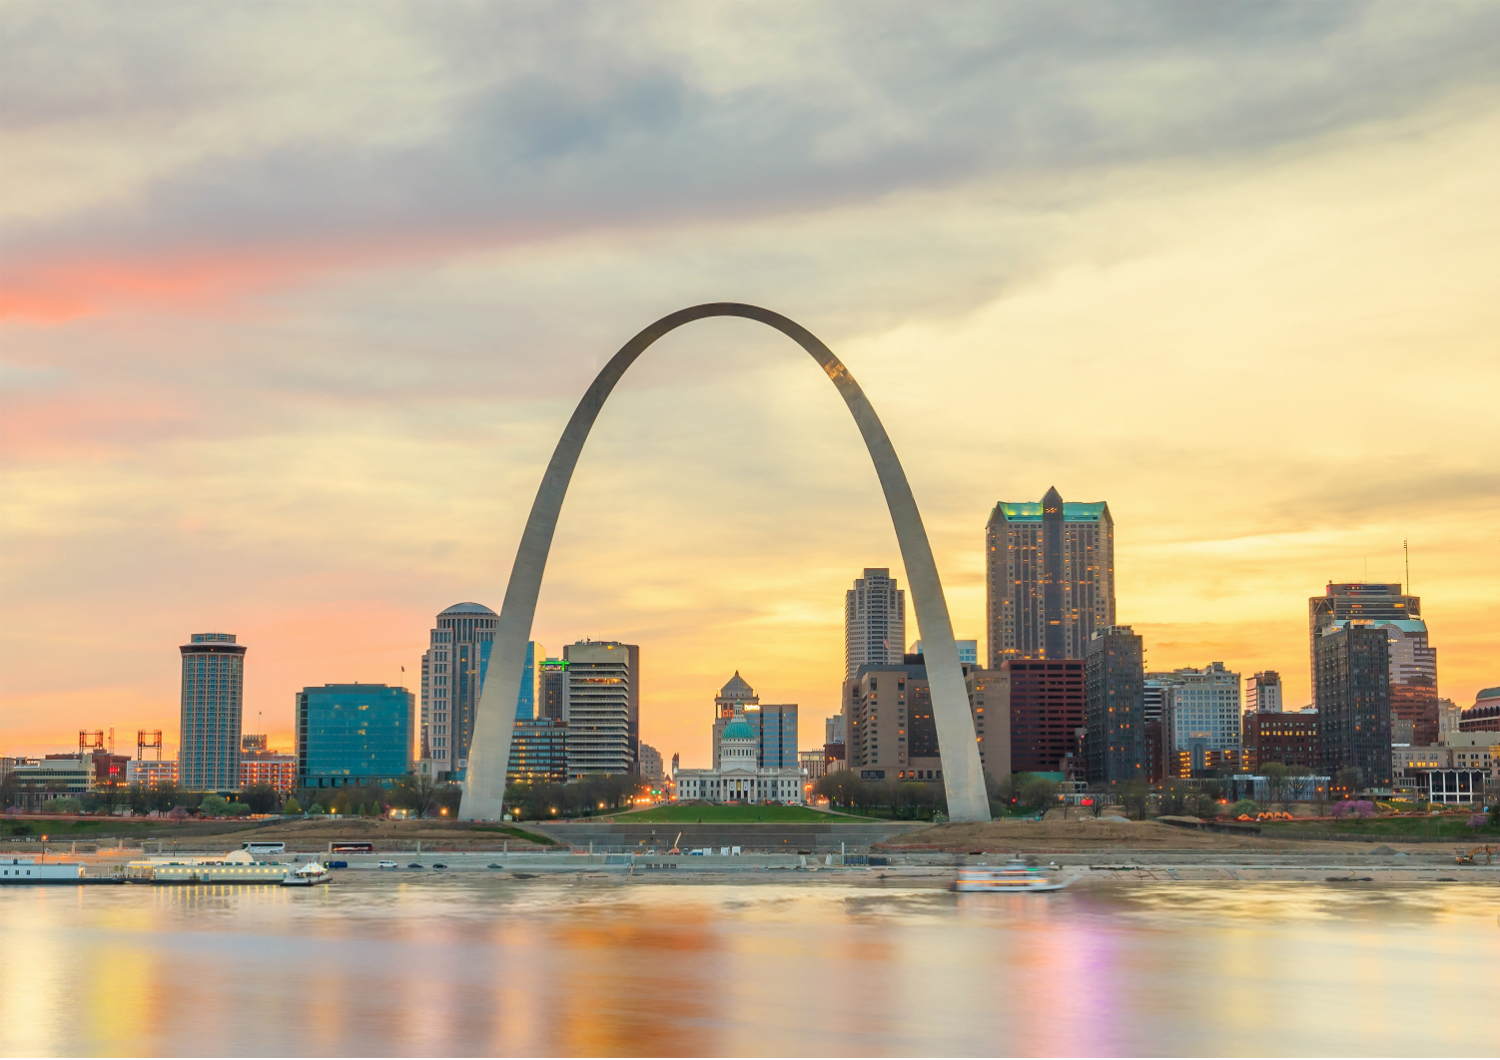 MCDC 2018 – 77th Annual Mid-Continent Dental Congress